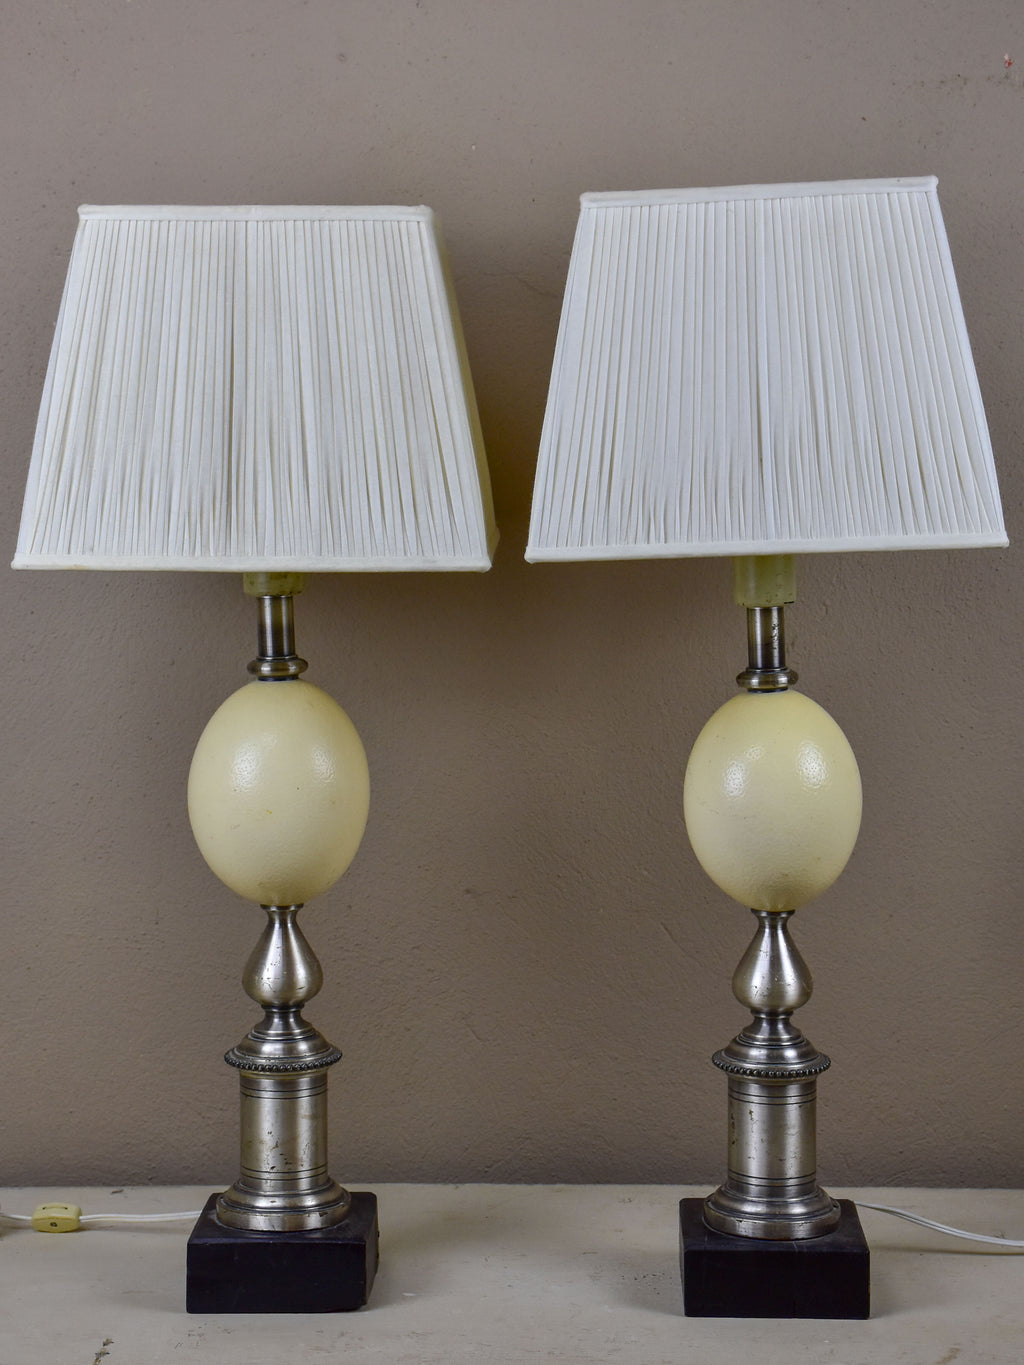 Pair of ostrich egg lamps with square lampshades